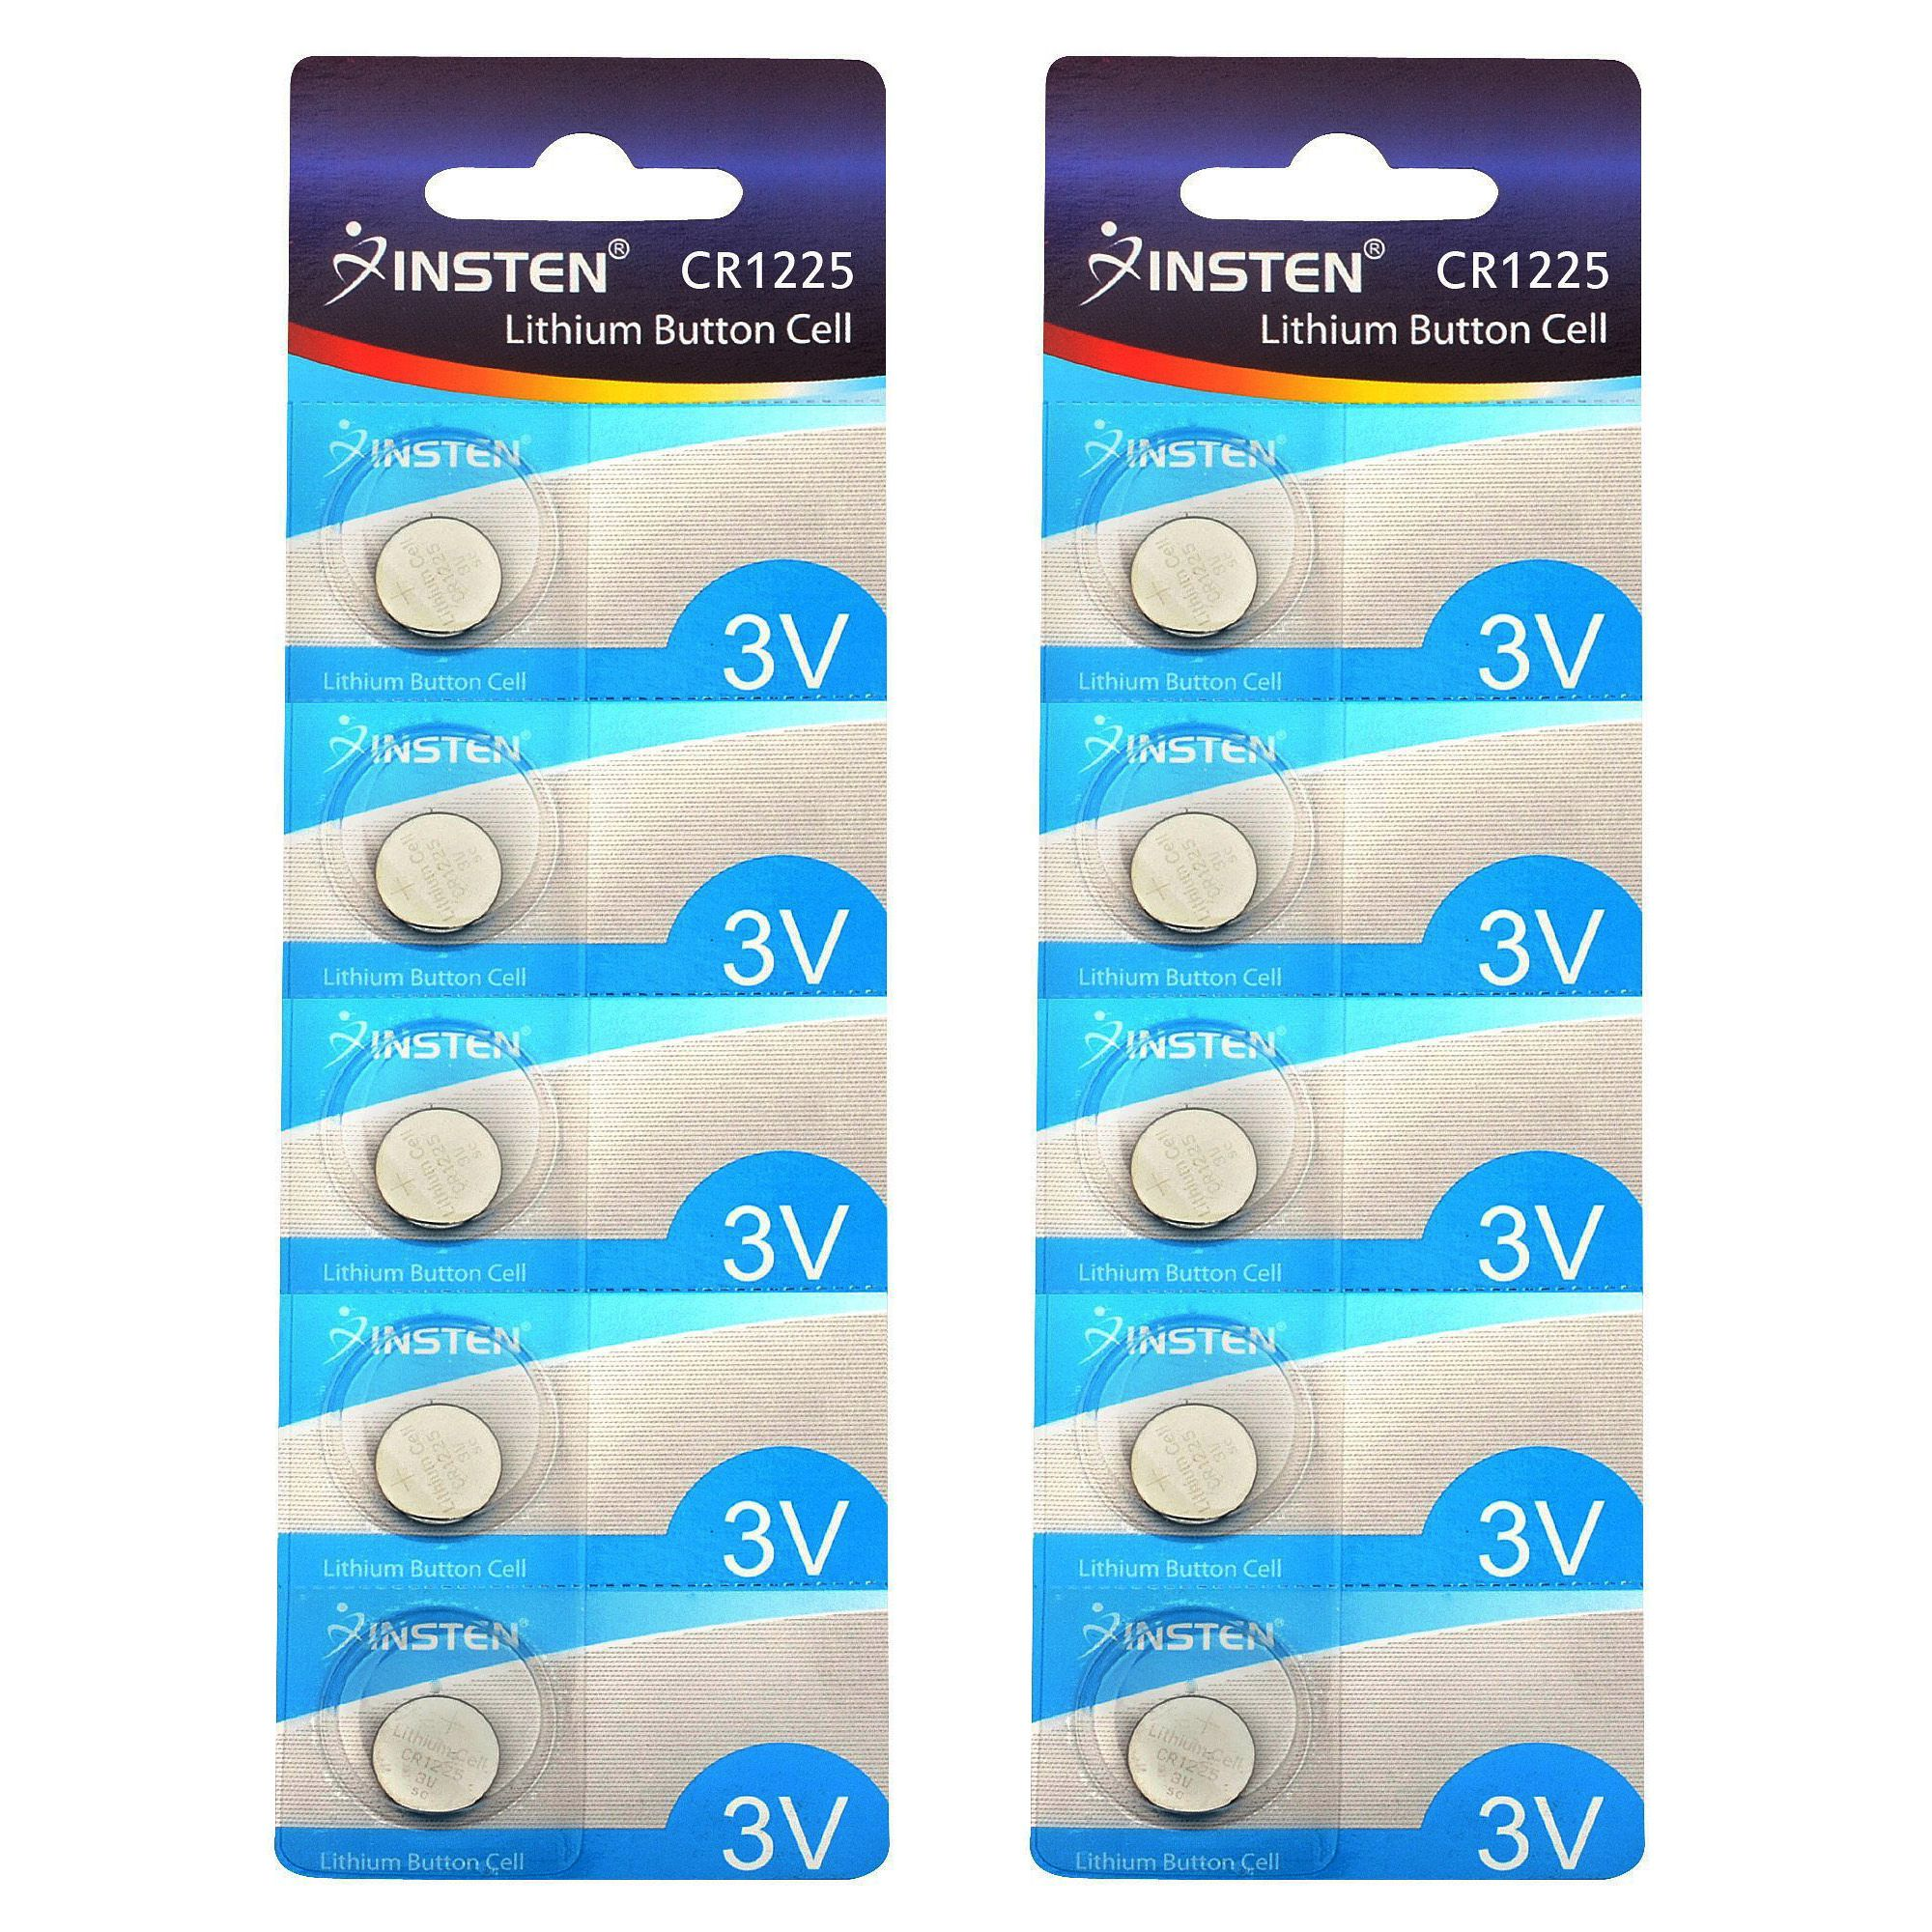 Insten CR1225 3V Lithium Batteries Coin Button Cell Watch Battery (Pack of 10)